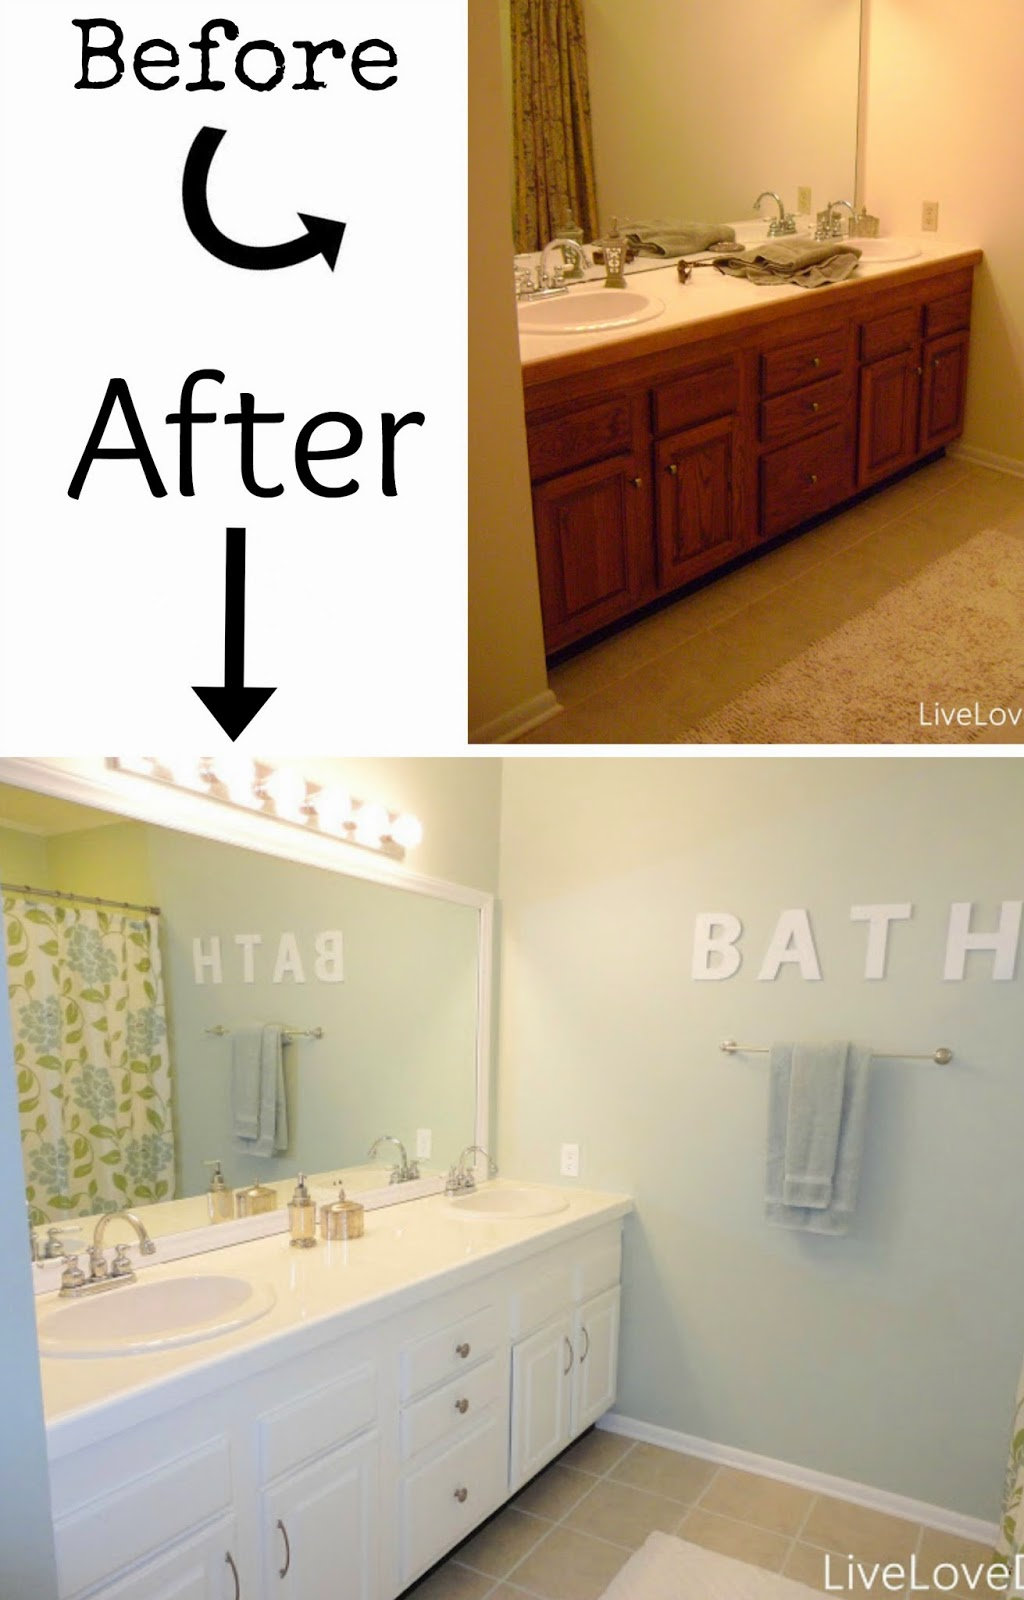 Pneumatic Addict : 7 Best DIY Bathroom Vanity Makeovers